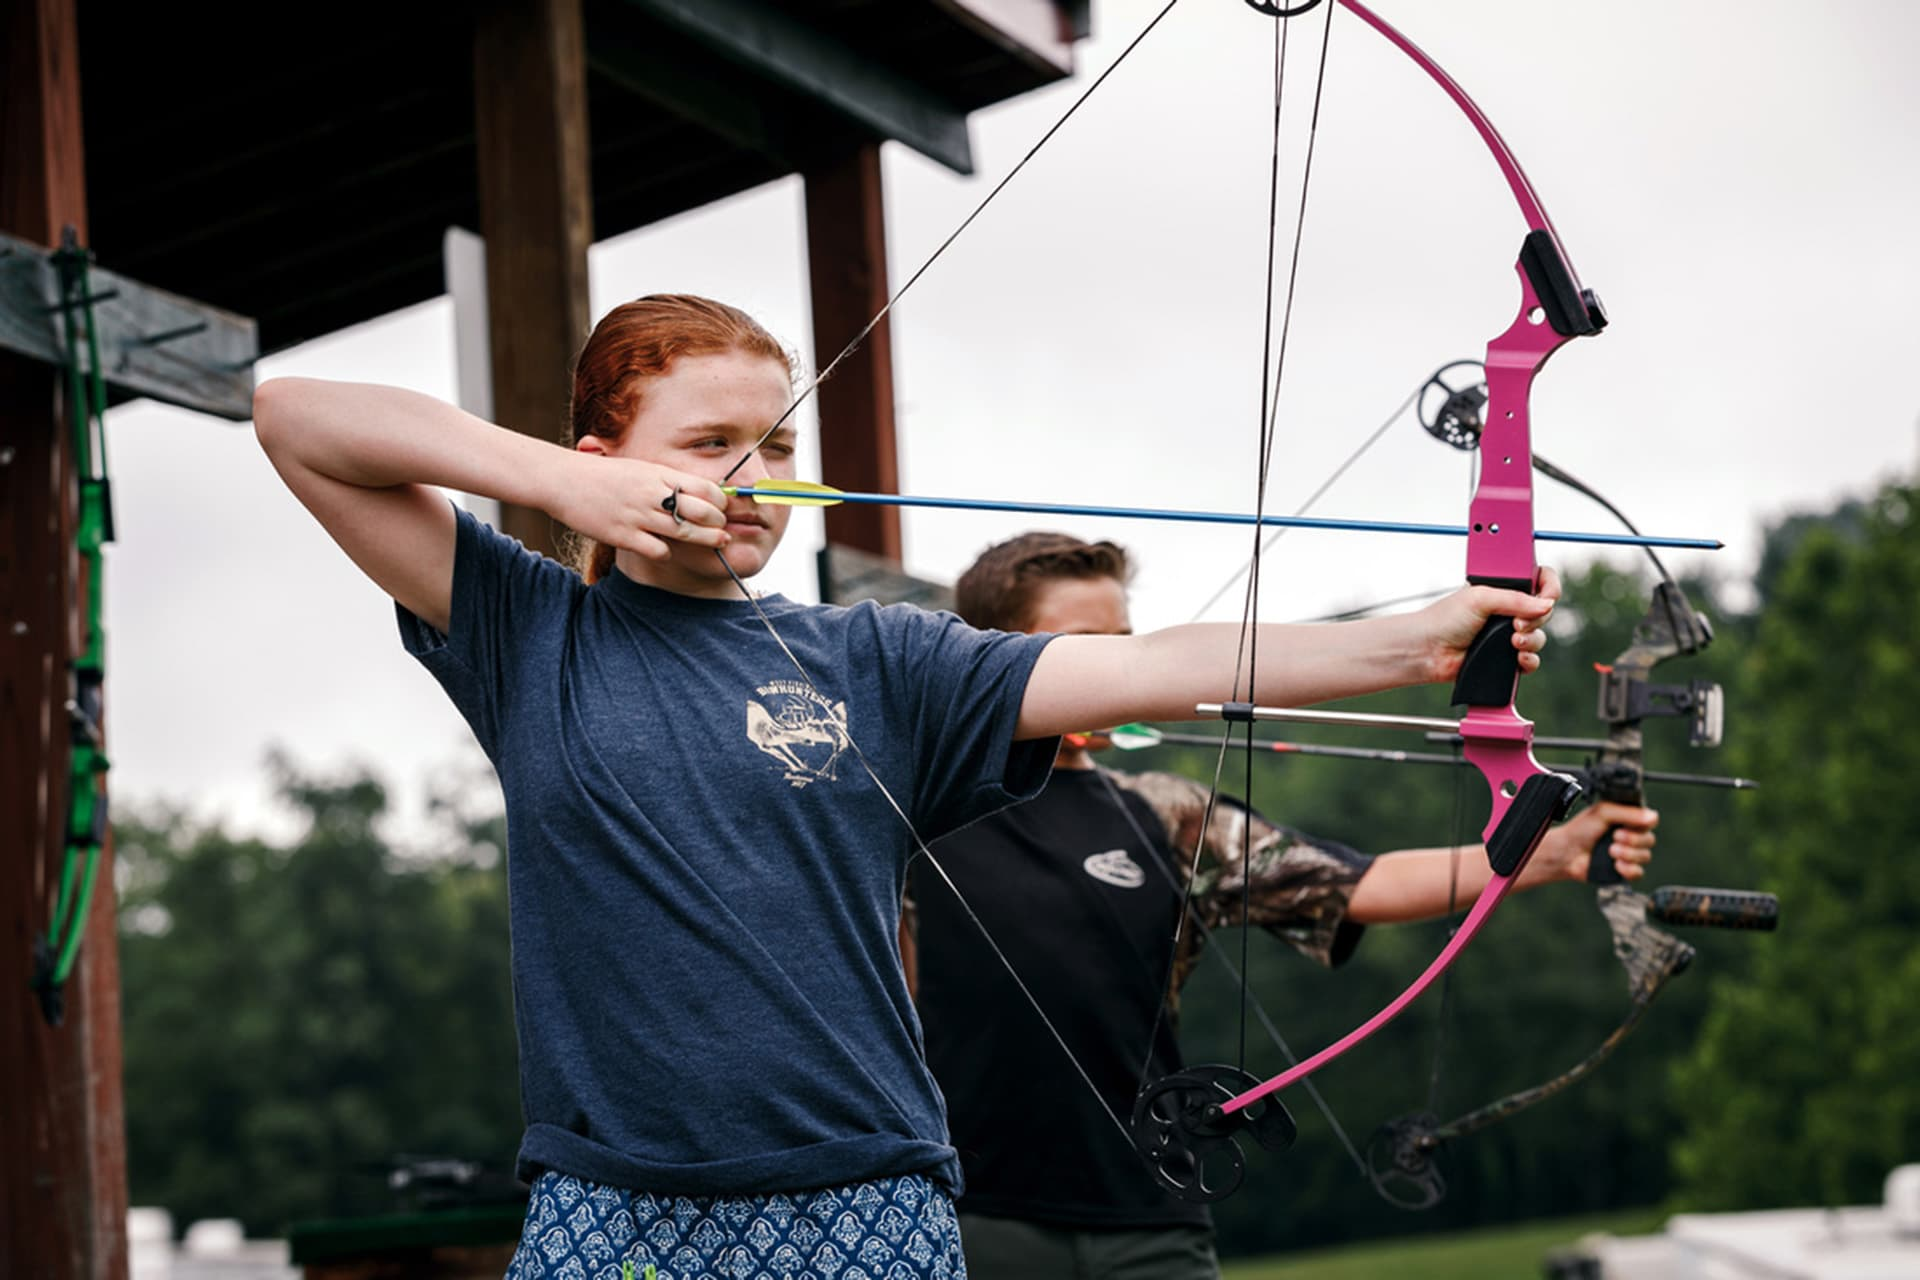 WVDNR shares tips for introducing kids to archery